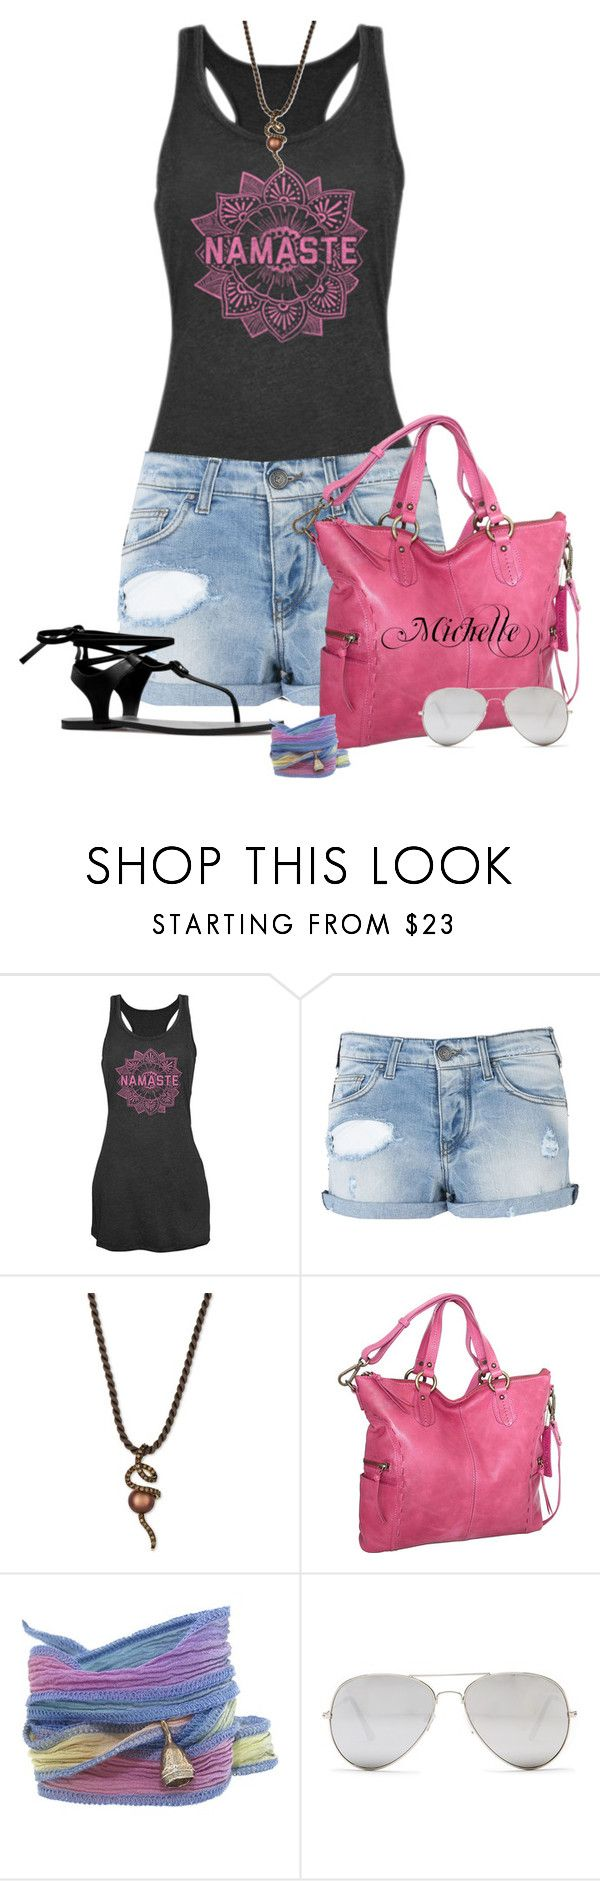 """""""Namaste"""" by michellesherrill ❤ liked on Polyvore featuring Chin Up, Armani Jeans, LE VIAN, Nino Bossi Handbags, Catherine Michiels and Sunny Rebel"""